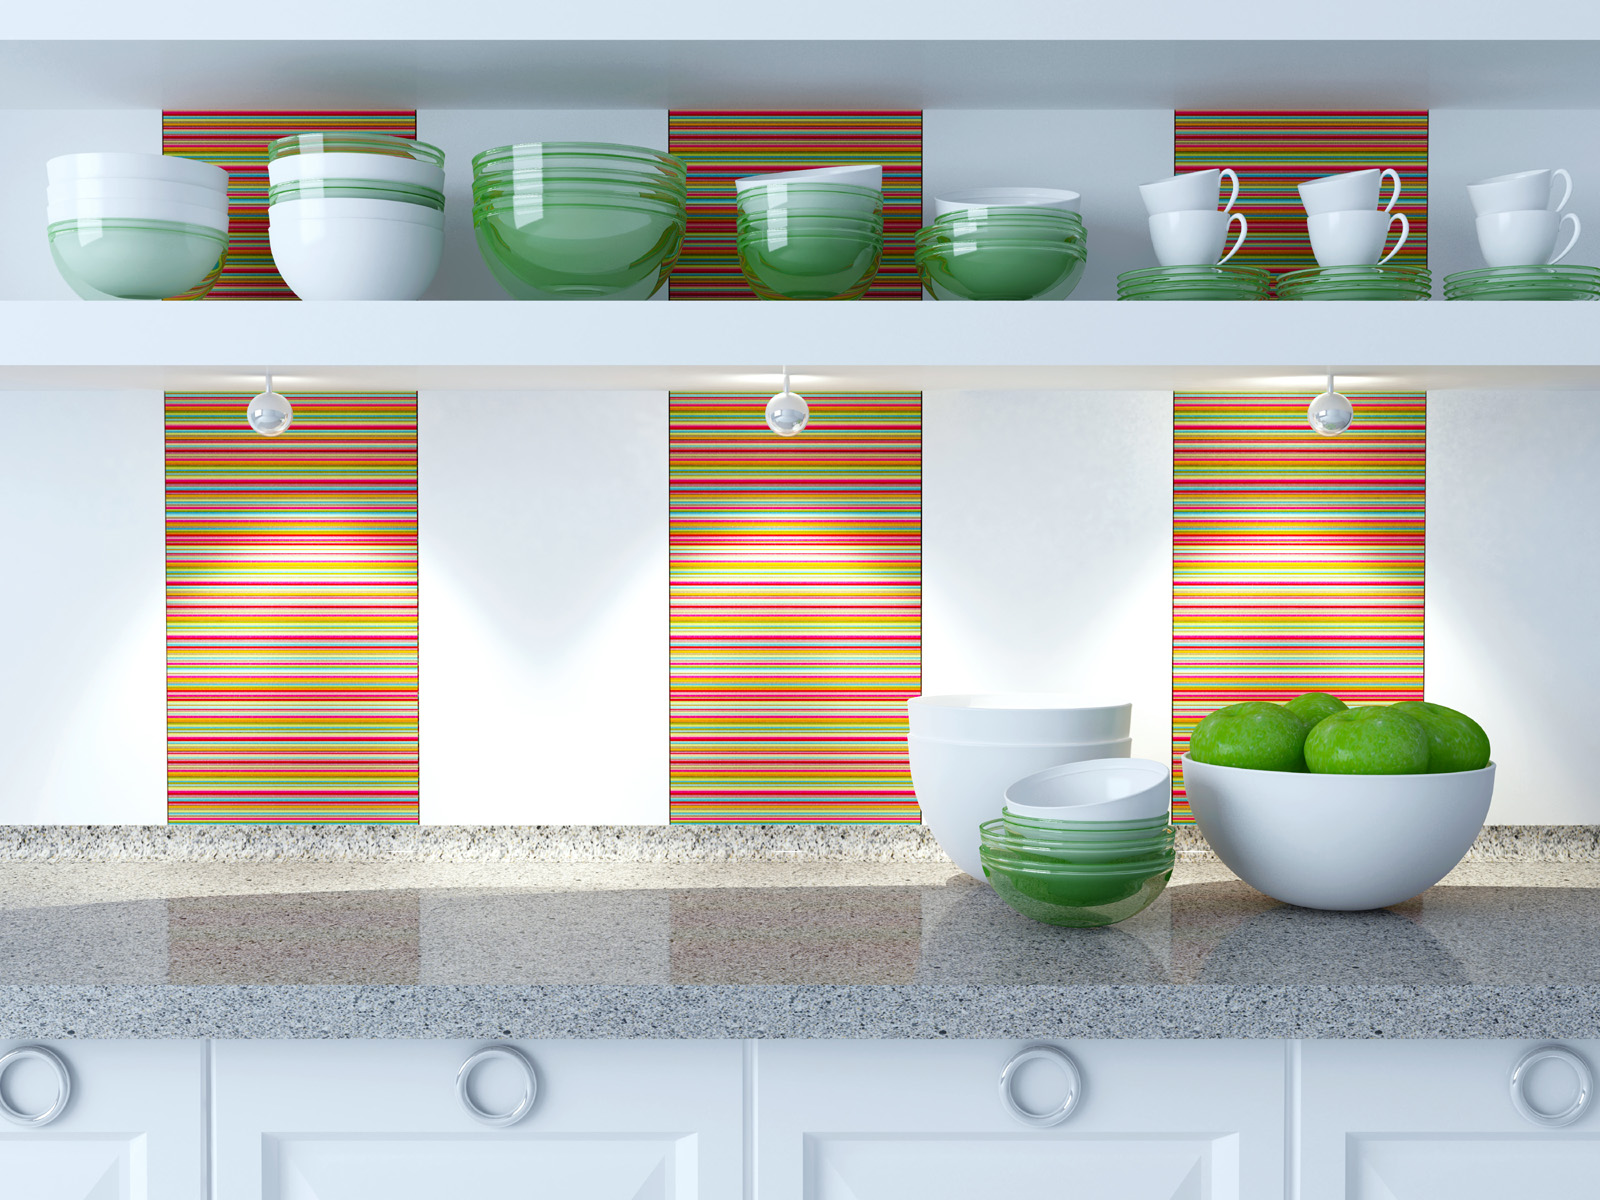 Bowls and other tableware on kitchen racks 50958